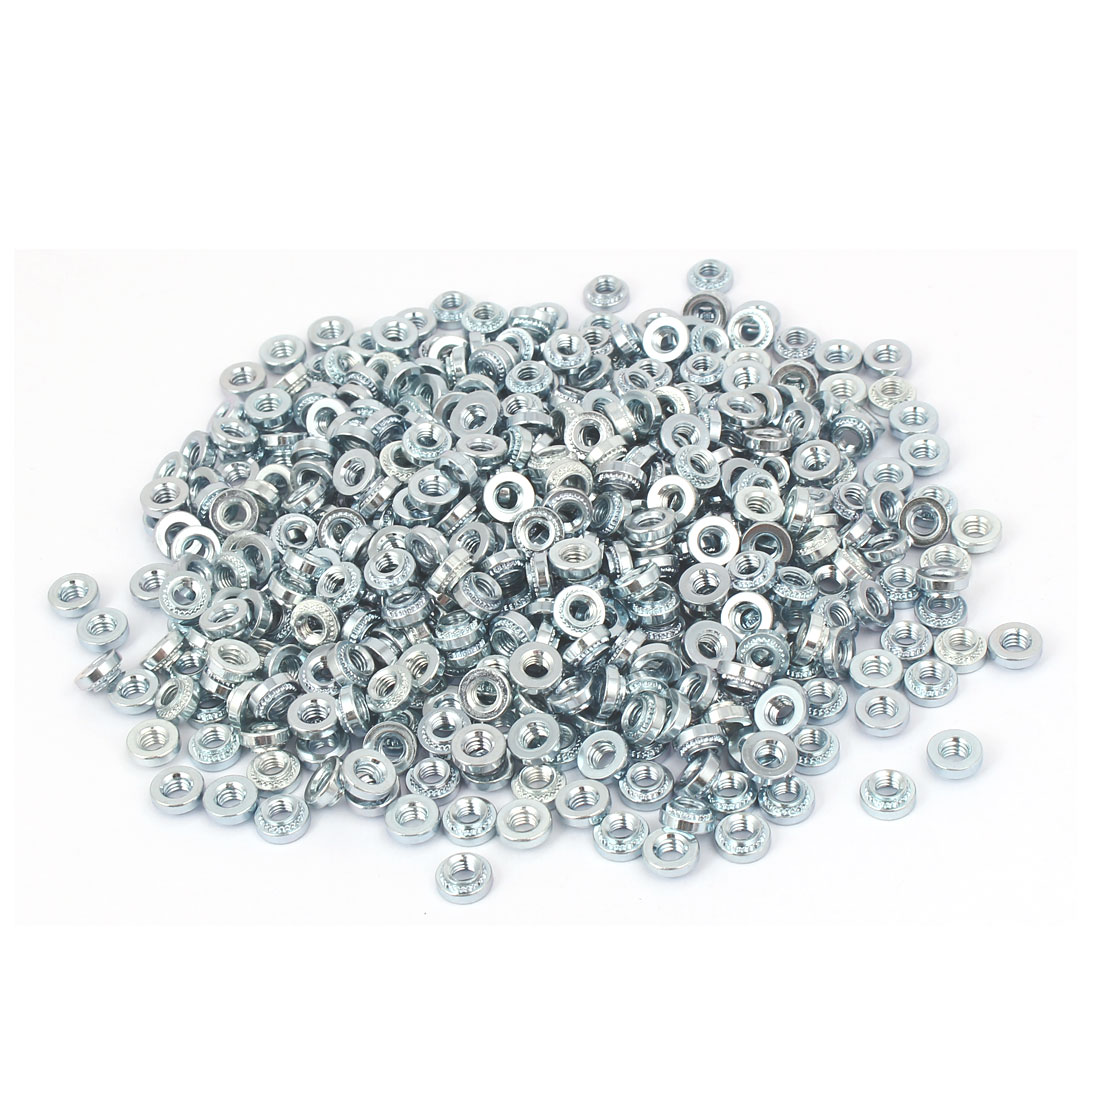 S-M4-2 Carbon Steel Self Clinching Rivet Nut Fastener 500pcs for 1.4mm Thin Plates